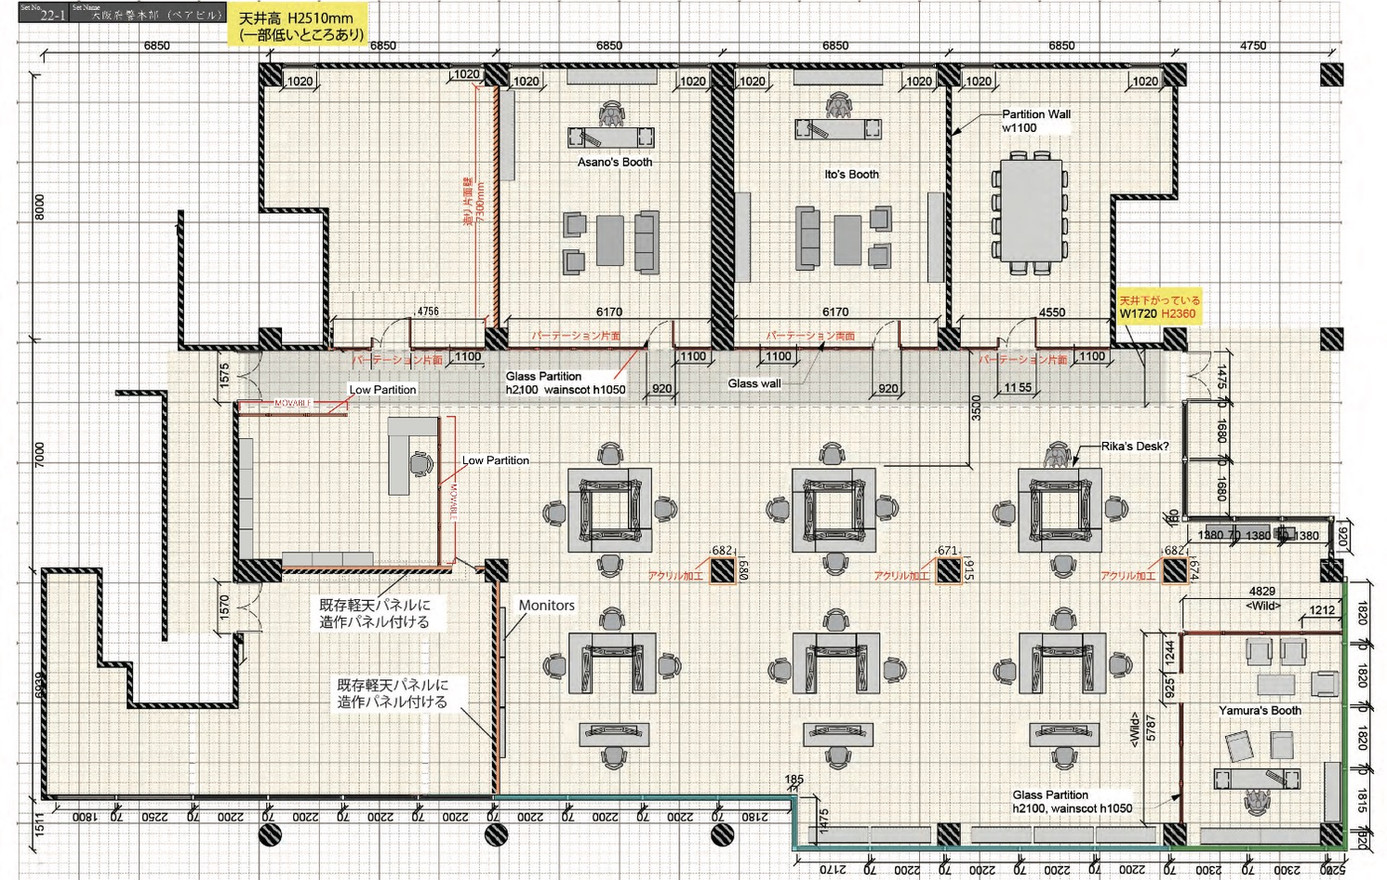 Floorplan [Police Office]